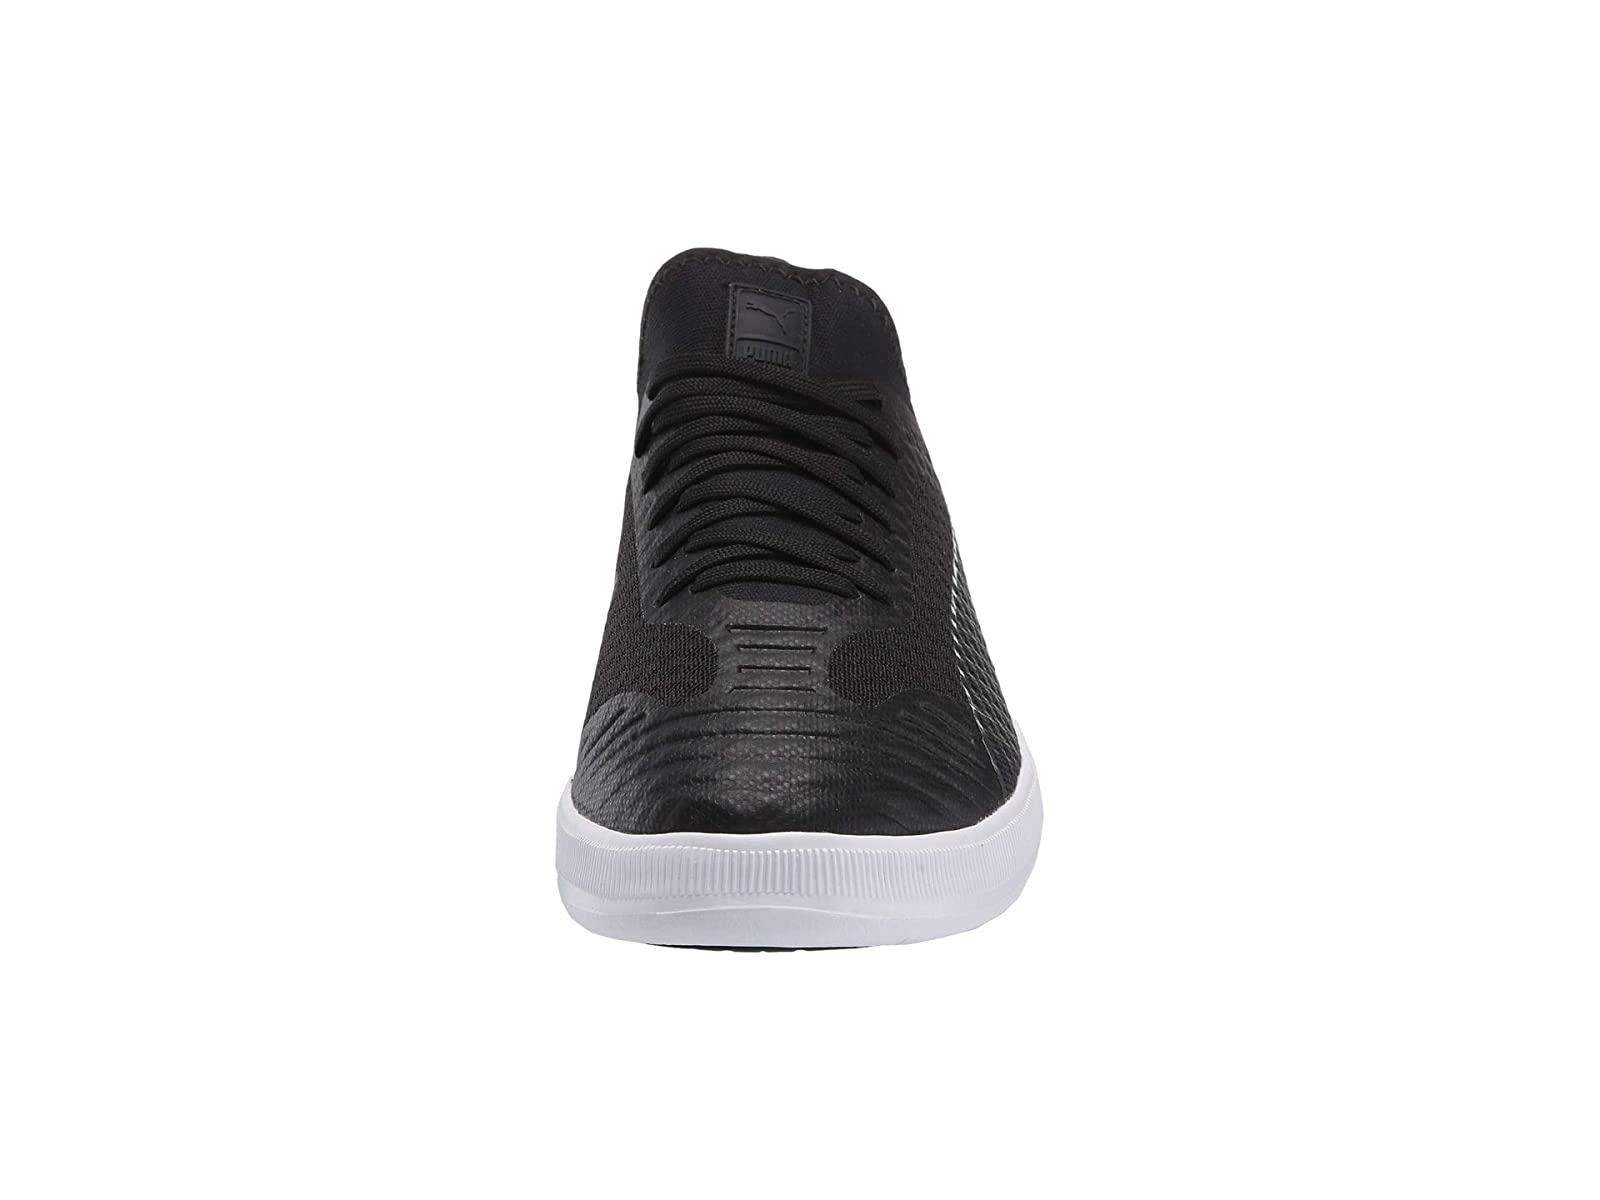 Man-039-s-Sneakers-amp-Athletic-Shoes-PUMA-365-Concrete-Lite thumbnail 15